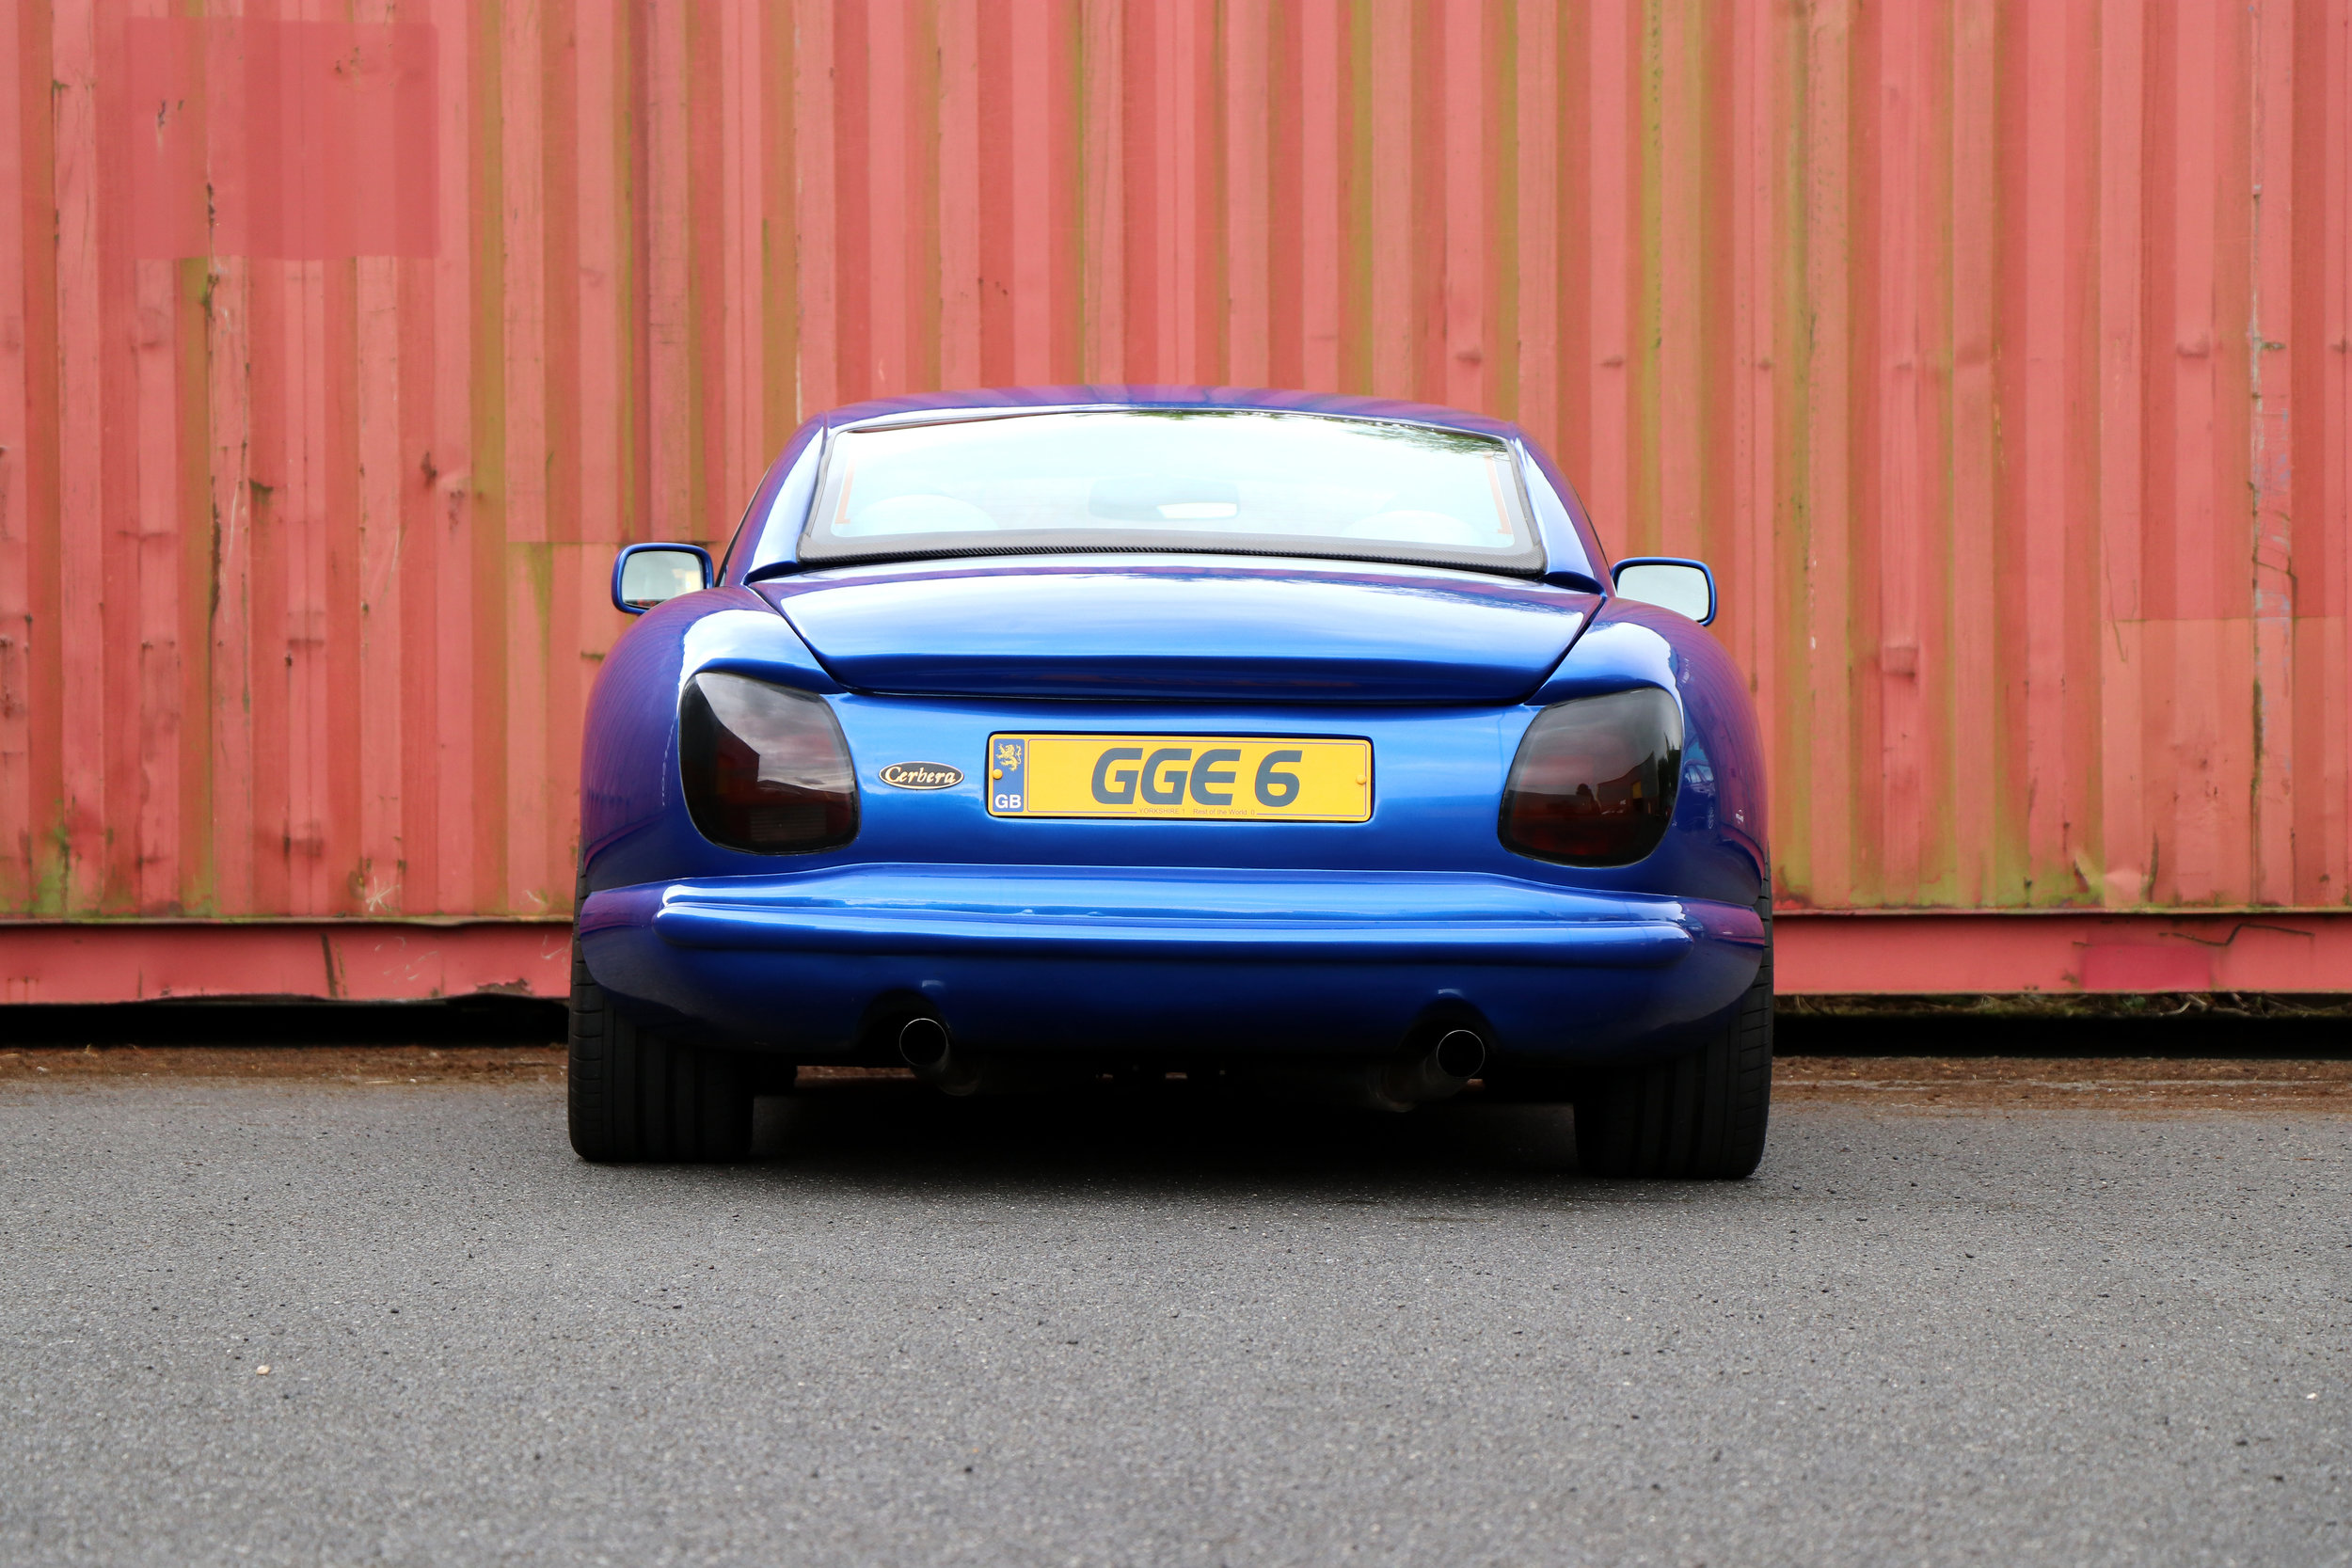 TVR Cerbera 1999, in blue, right hand drive, V8, for sale at Three Point Four.